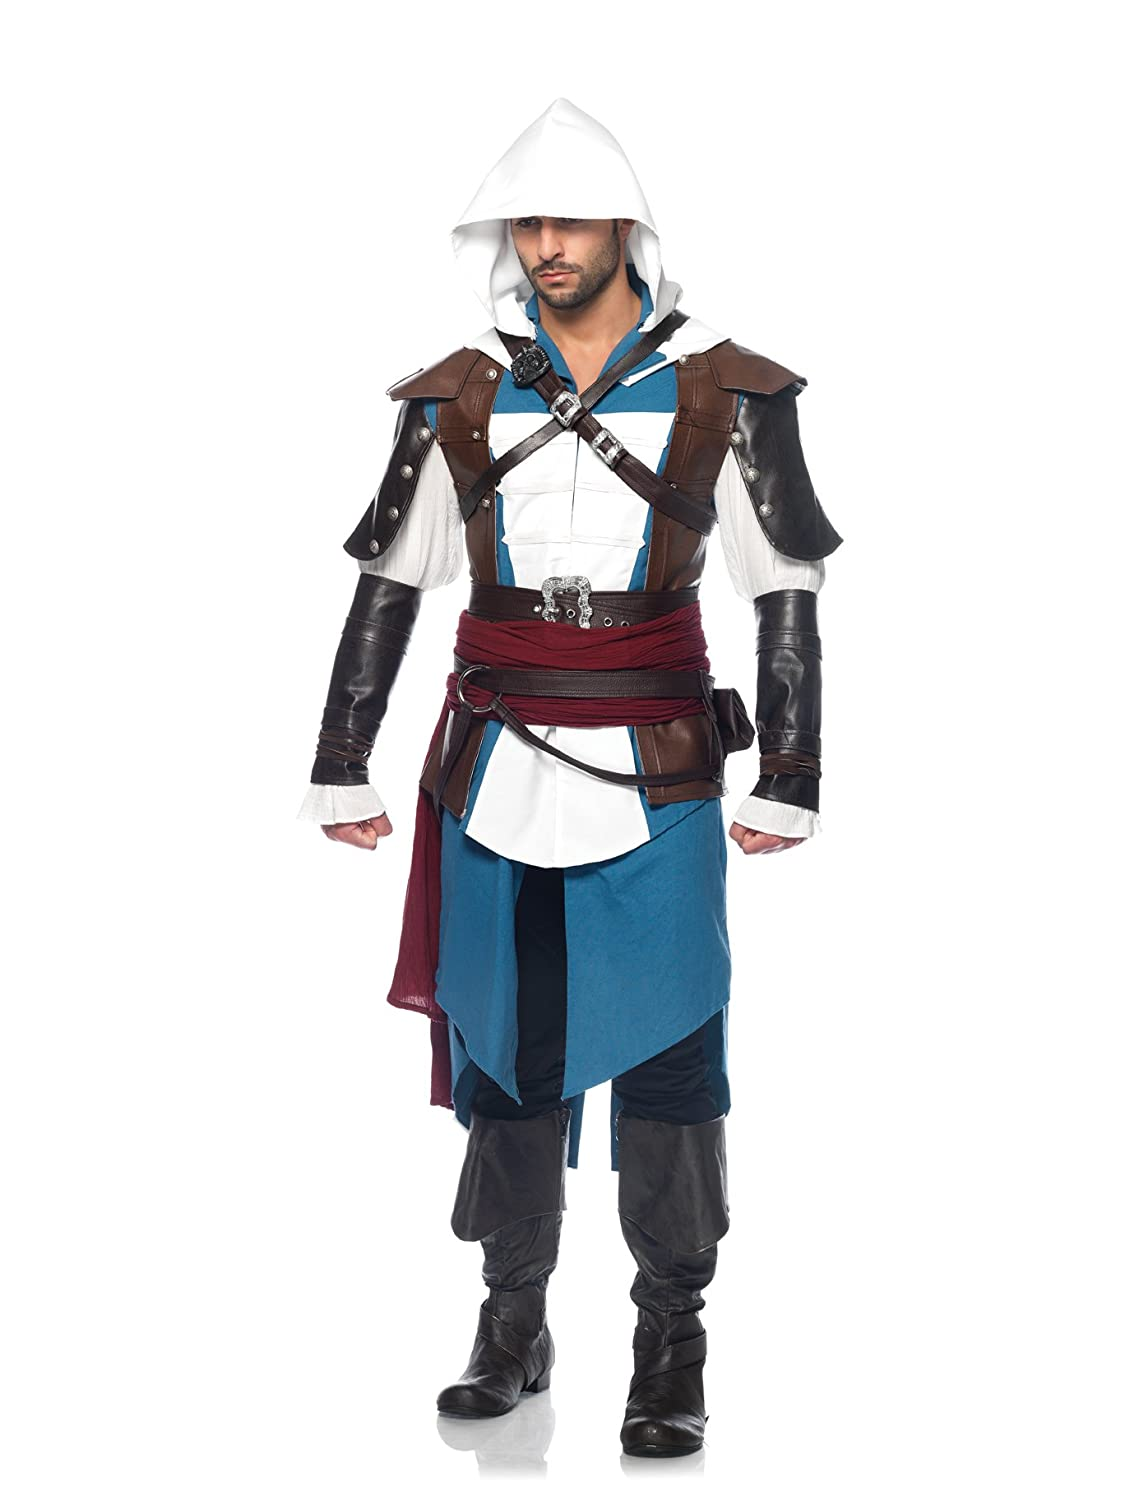 Deluxe Adult Costumes - Men's Assassin's Creed IV Black Flag Edward James Kenway Deluxe 9-Piece Cosplay Costume.